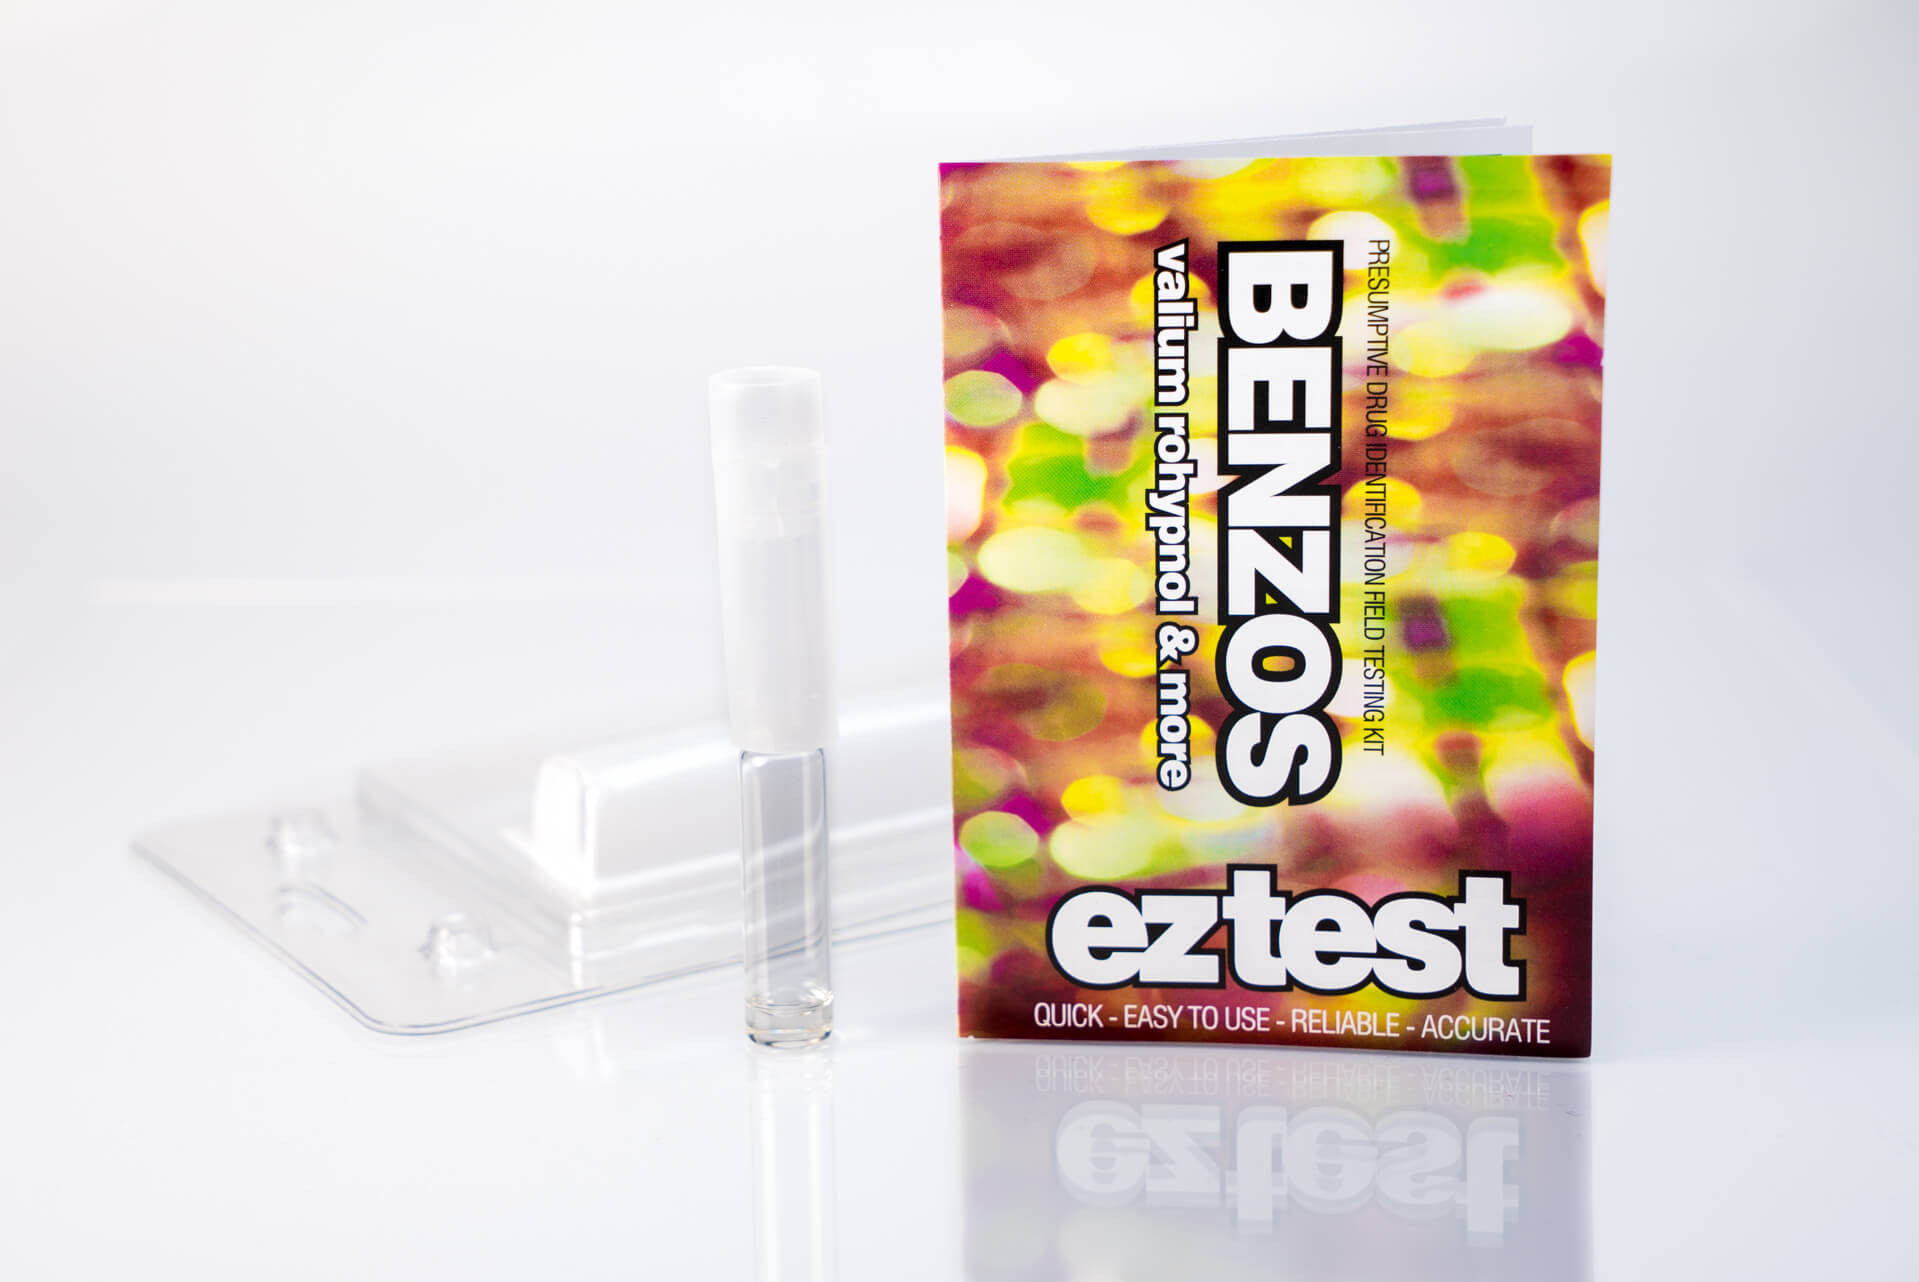 Kit de Test de Benzo à Usage Unique